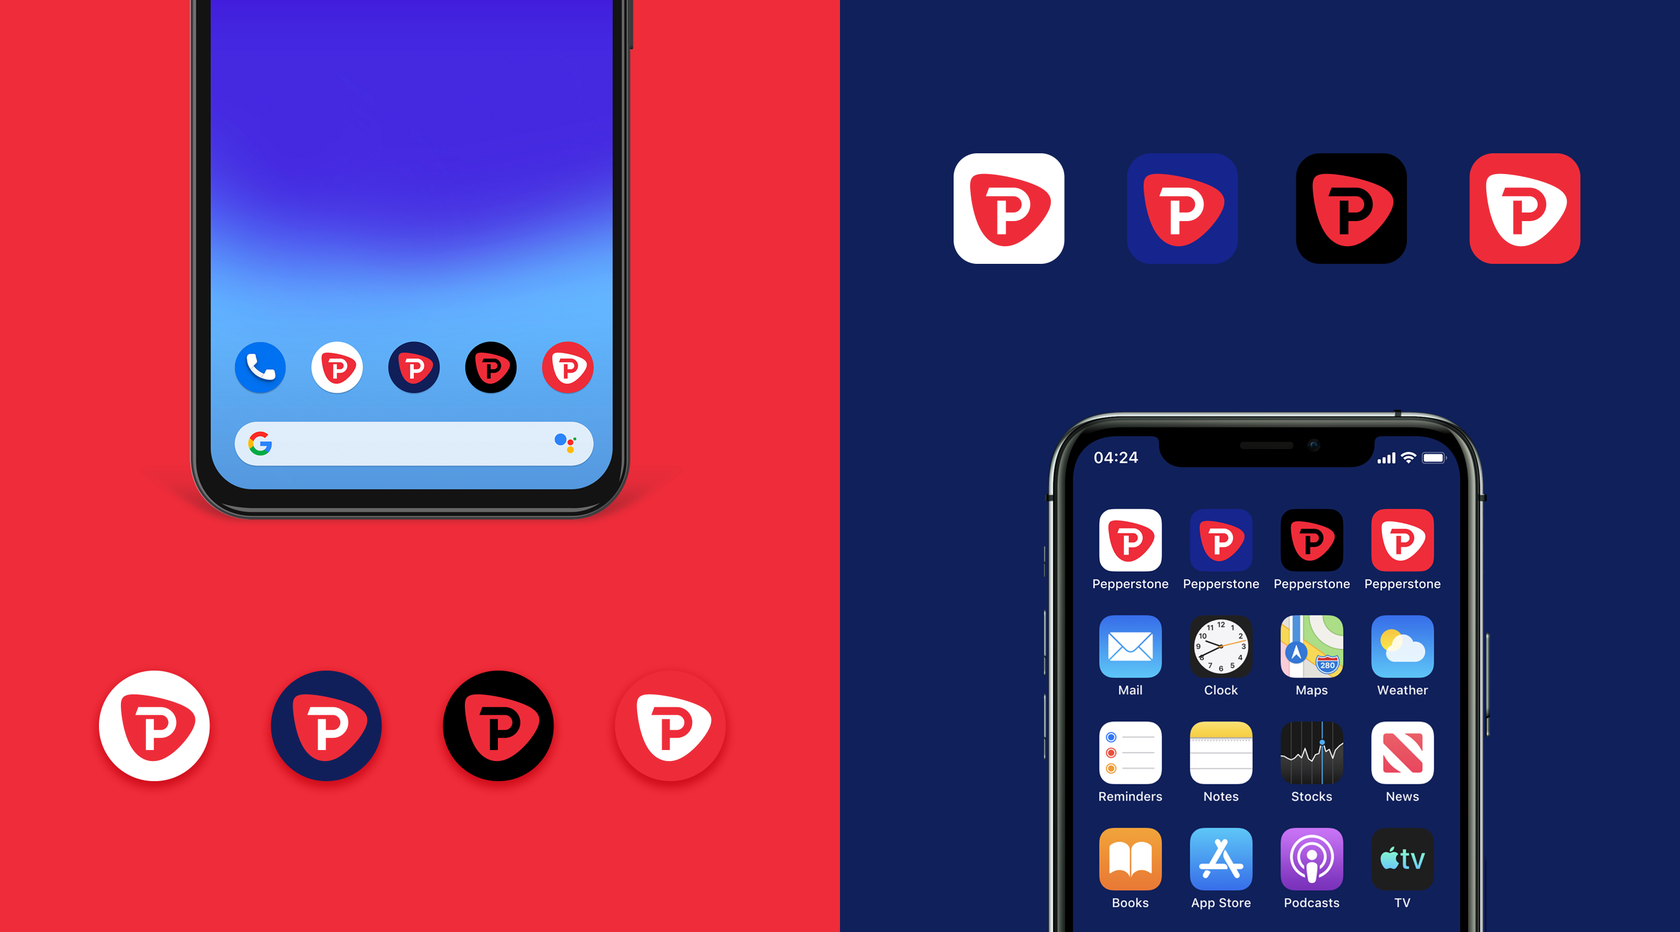 Pepperstone mobile icons